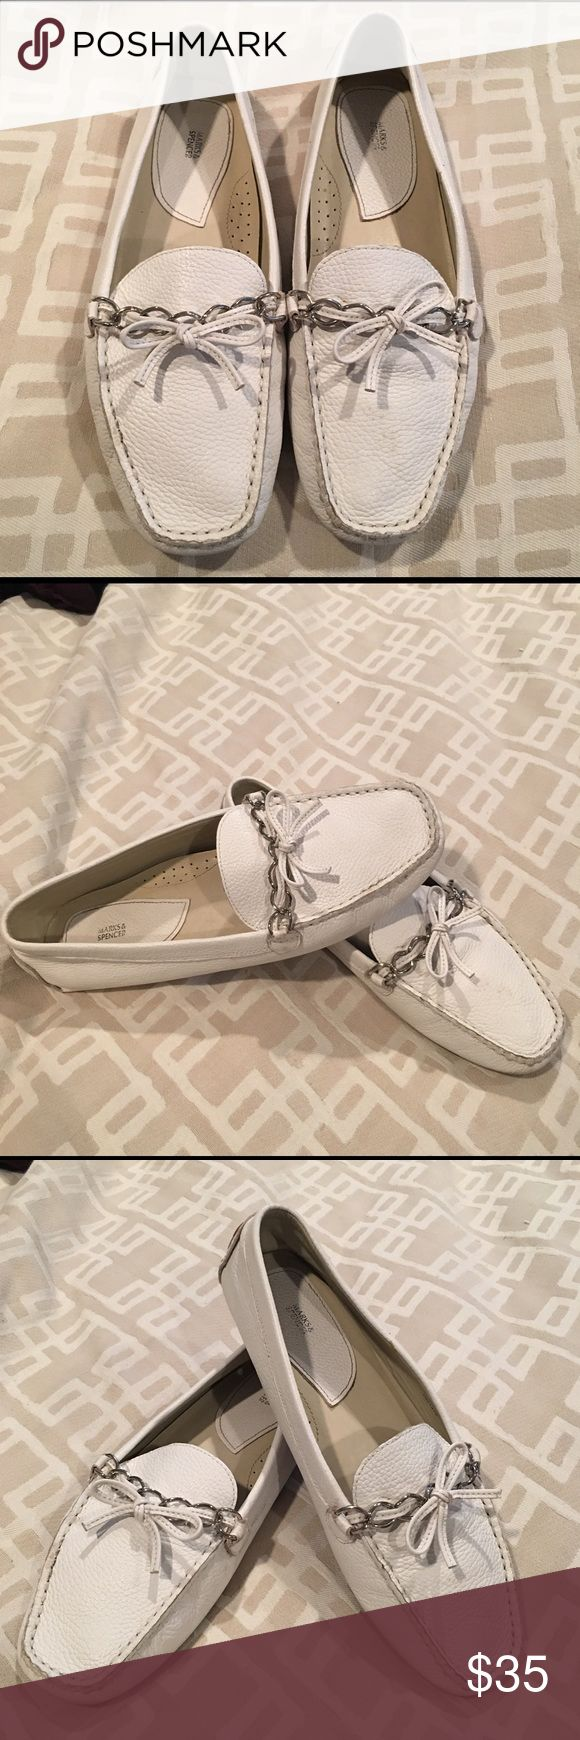 Leather Marks & Spencer Loafers Comfy, great quality loafers. Get that professional look while also feeling so comfortable!! These are in great shape, Worn once. Bought these in London they are a UK 6, but fit perfectly for a US 8.5 Shoes Flats & Loafers